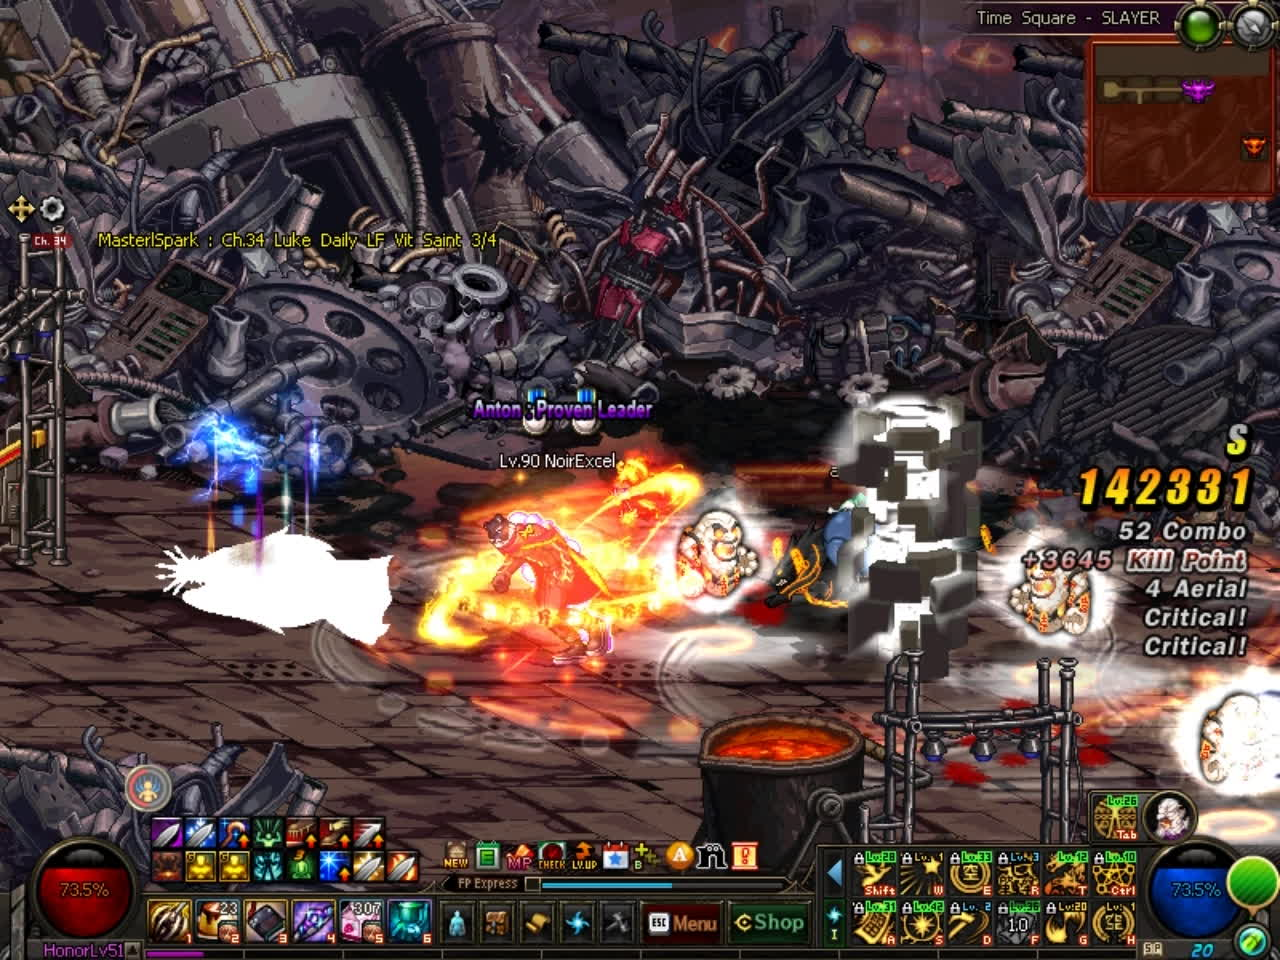 60fps, dfo, mmorpg, DFO Hell Mode Vol.82 GIFs